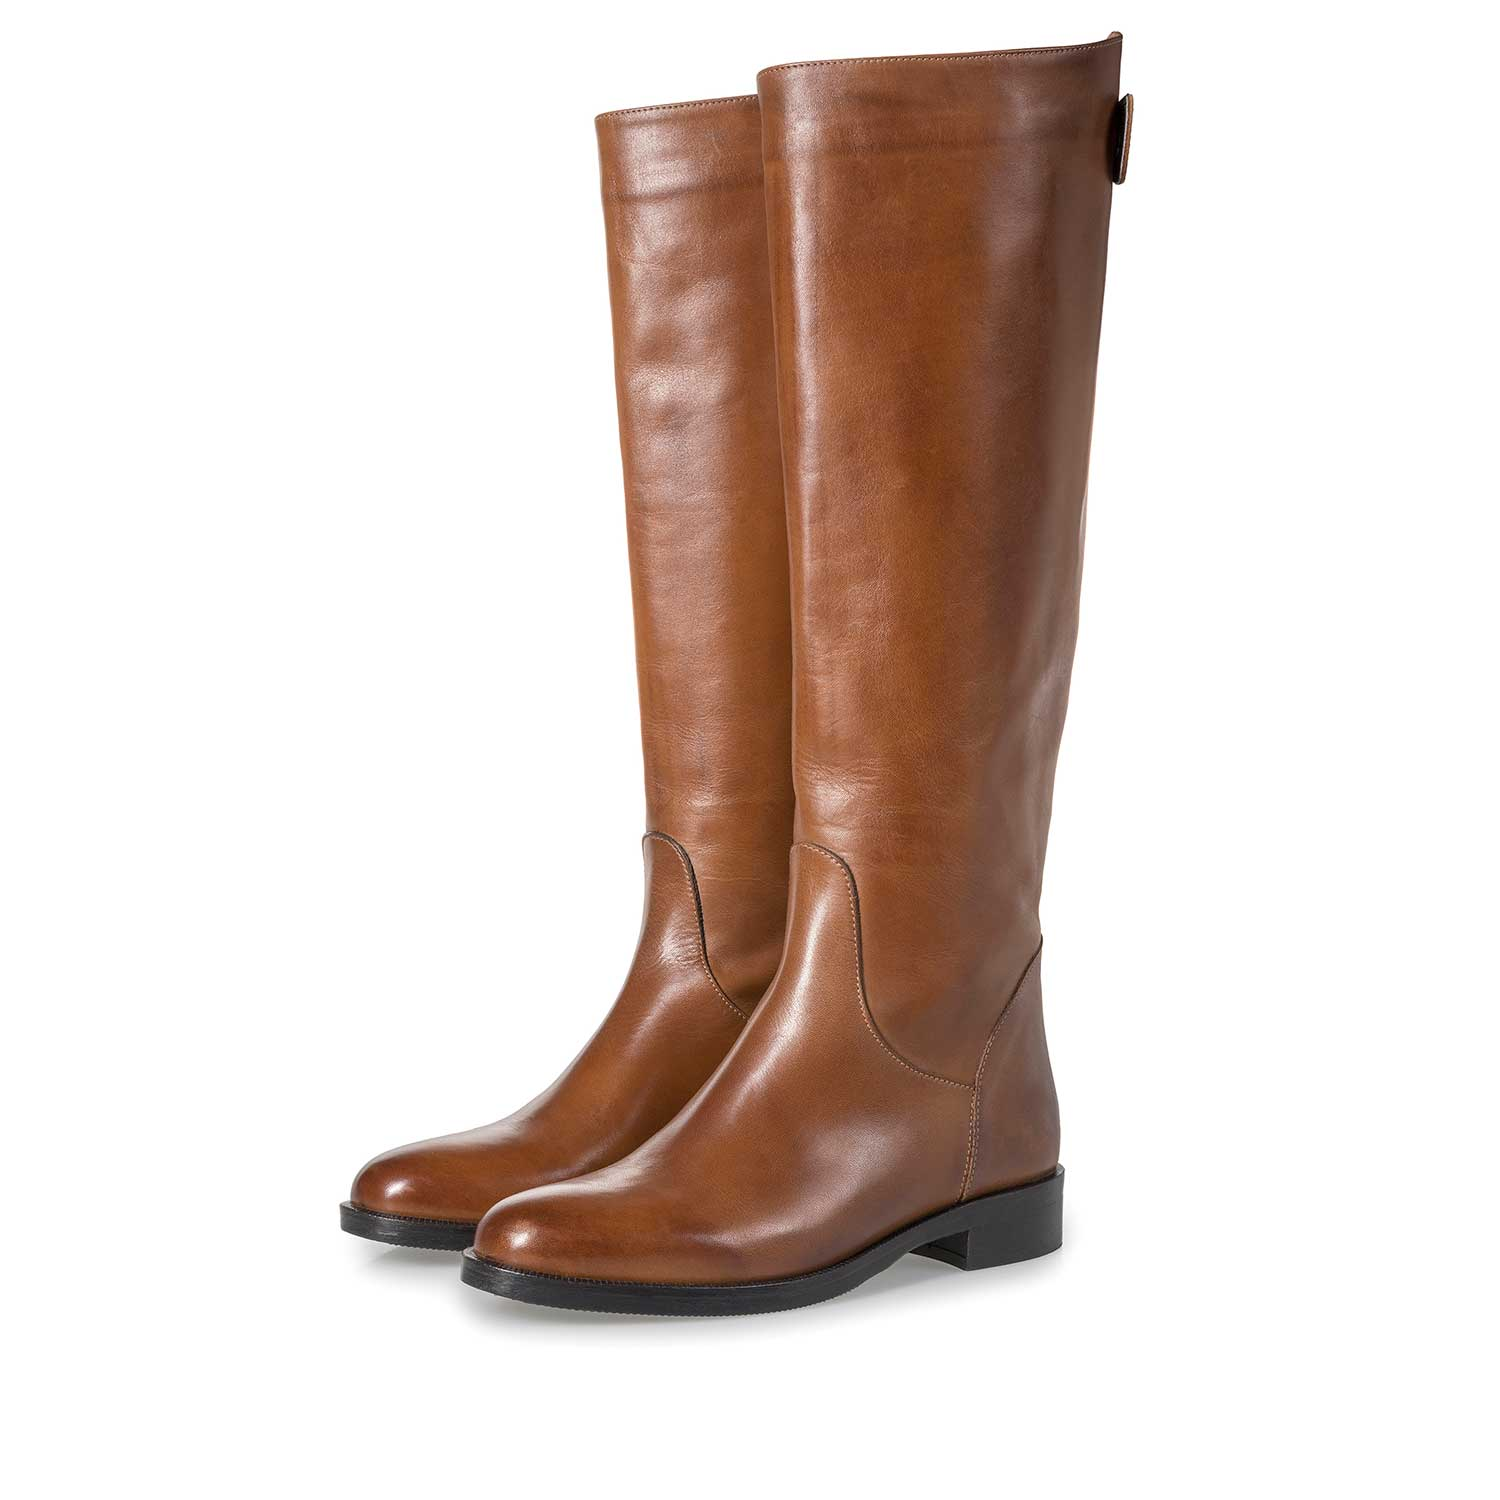 85715/02 - Cognac-coloured calf leather high boots